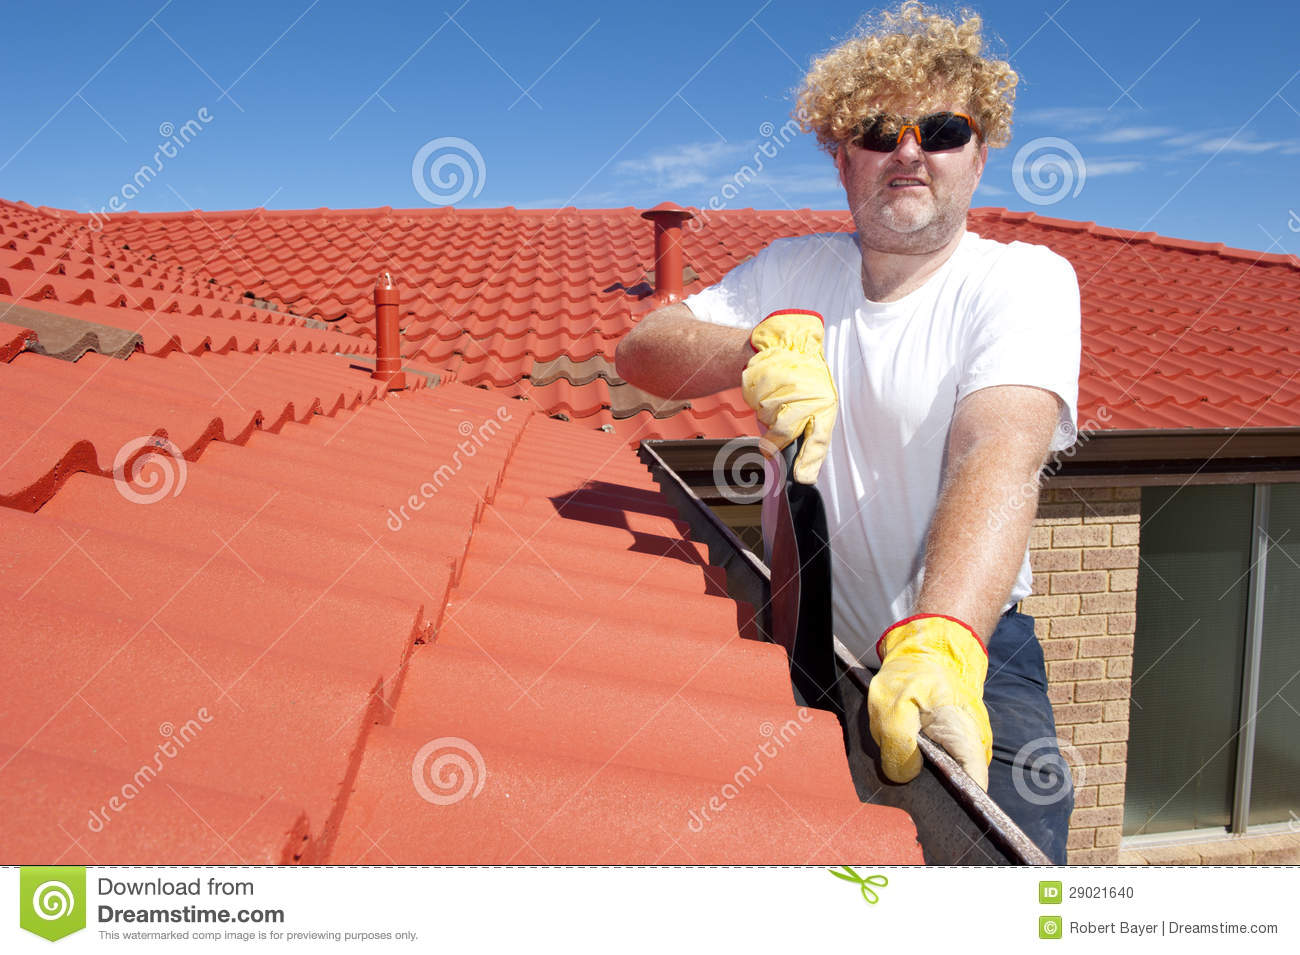 Man Seasonal Gutter Cleaning Red Roof Stock Photo Image